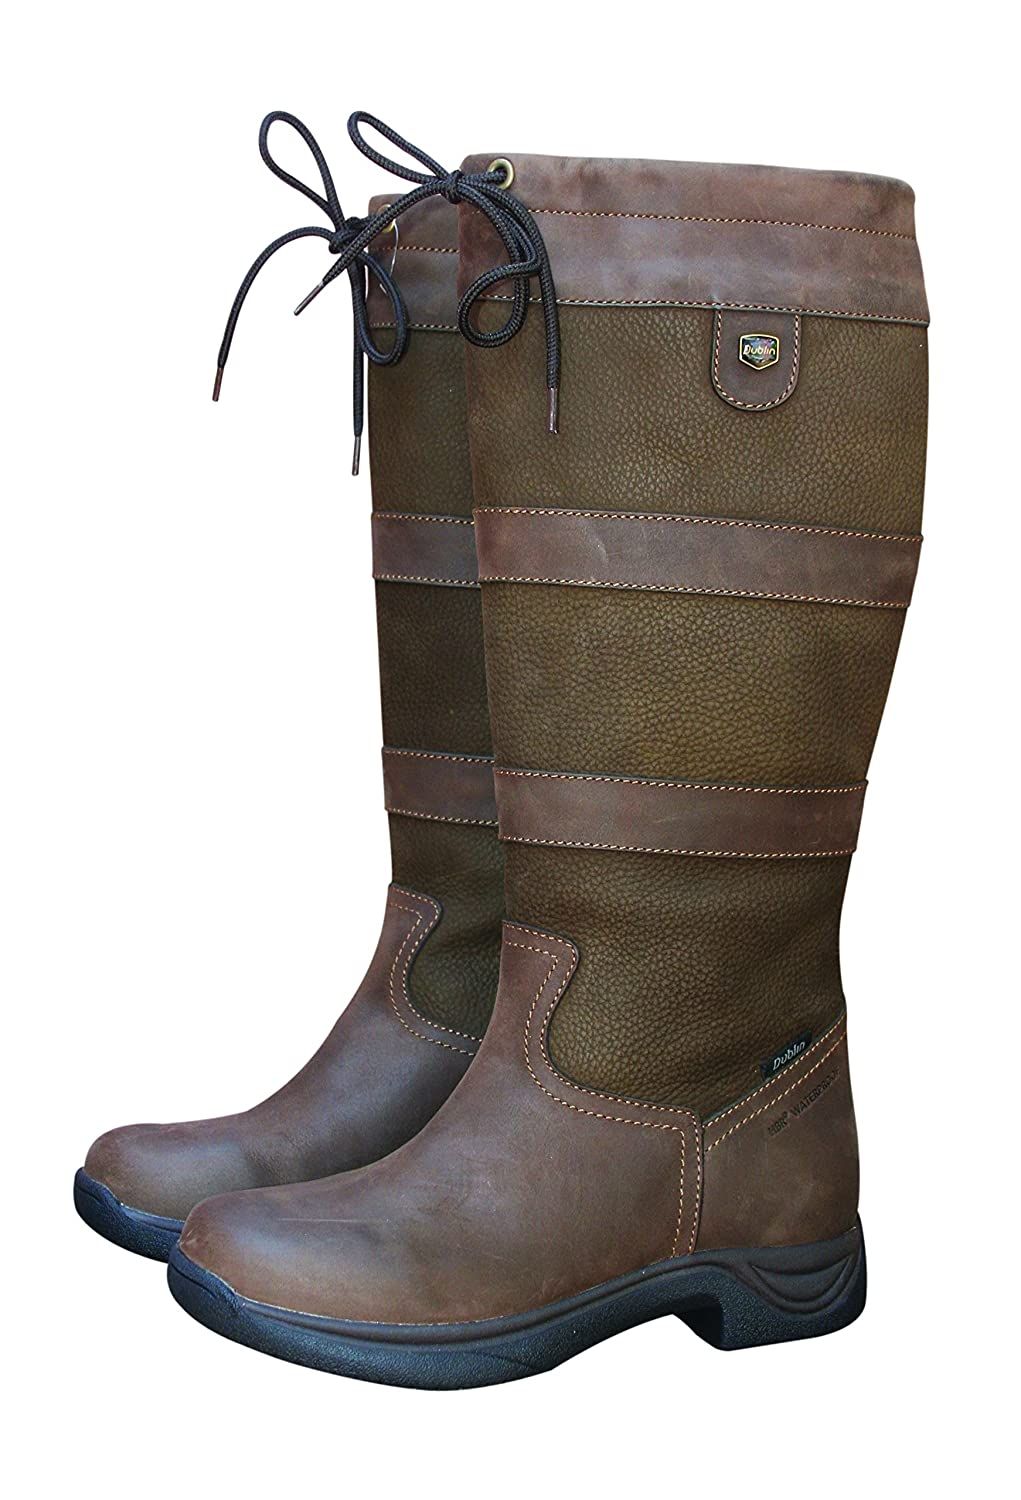 Dublin Ladies River Boots II Chocolate B075C72K8X 10